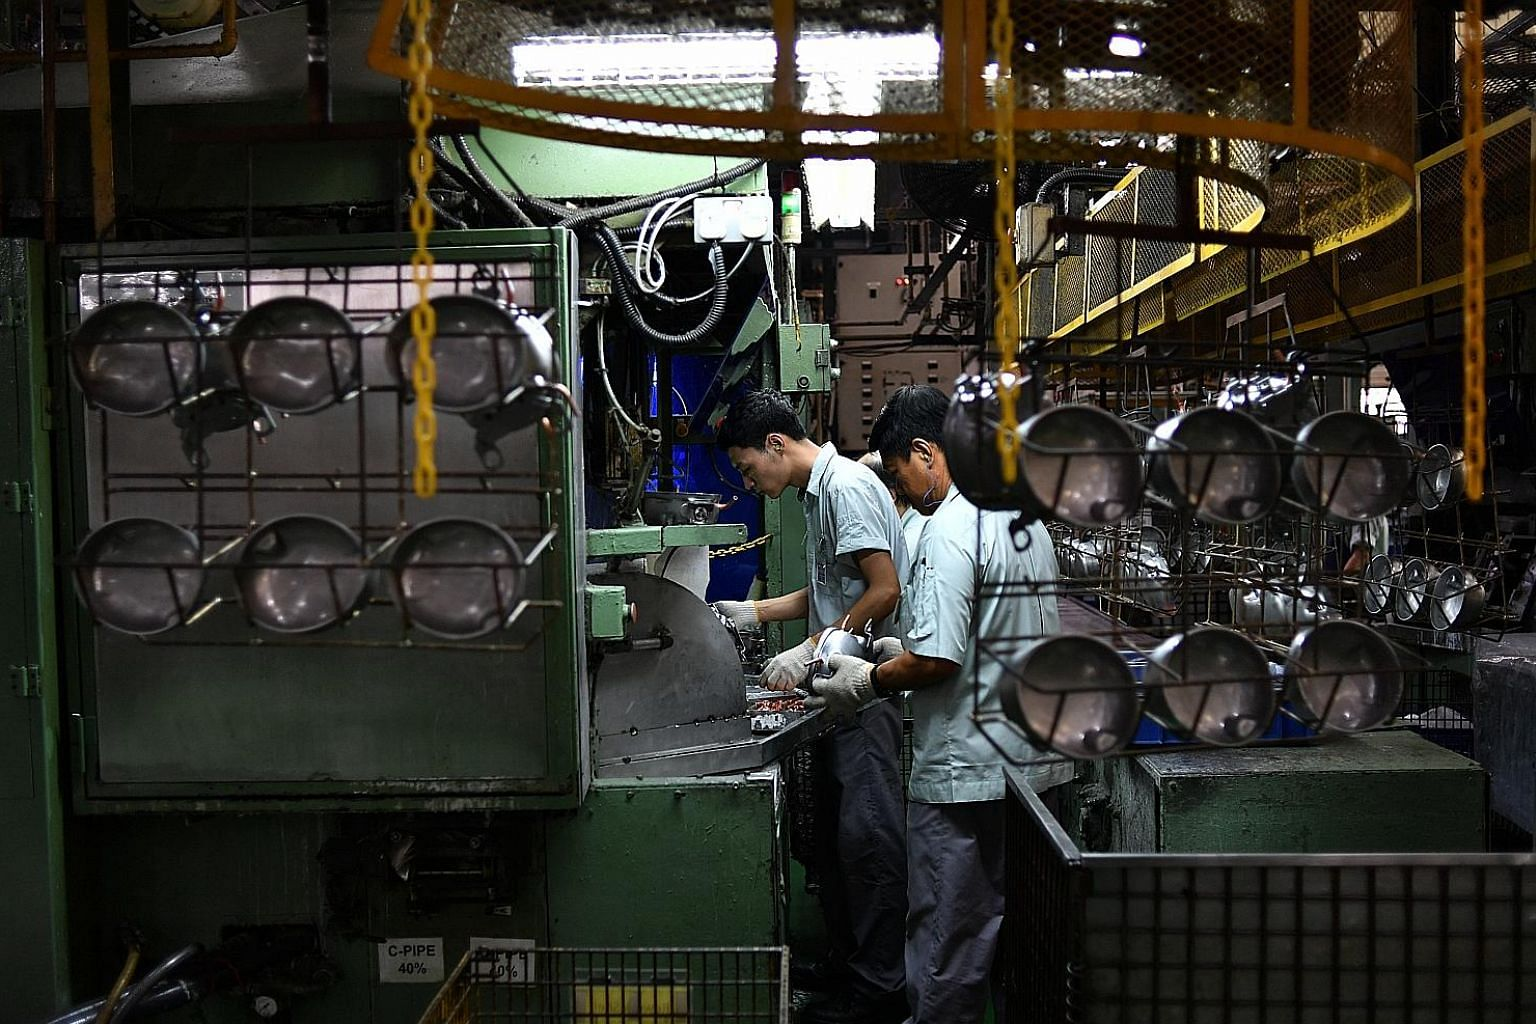 Singapore's manufacturing sector grew 11.2 per cent in the first eight months of the year - the highest since April 2011. DBS economist Irvin Seah said the improved reading for the electronics sector was in line with the latest industrial production